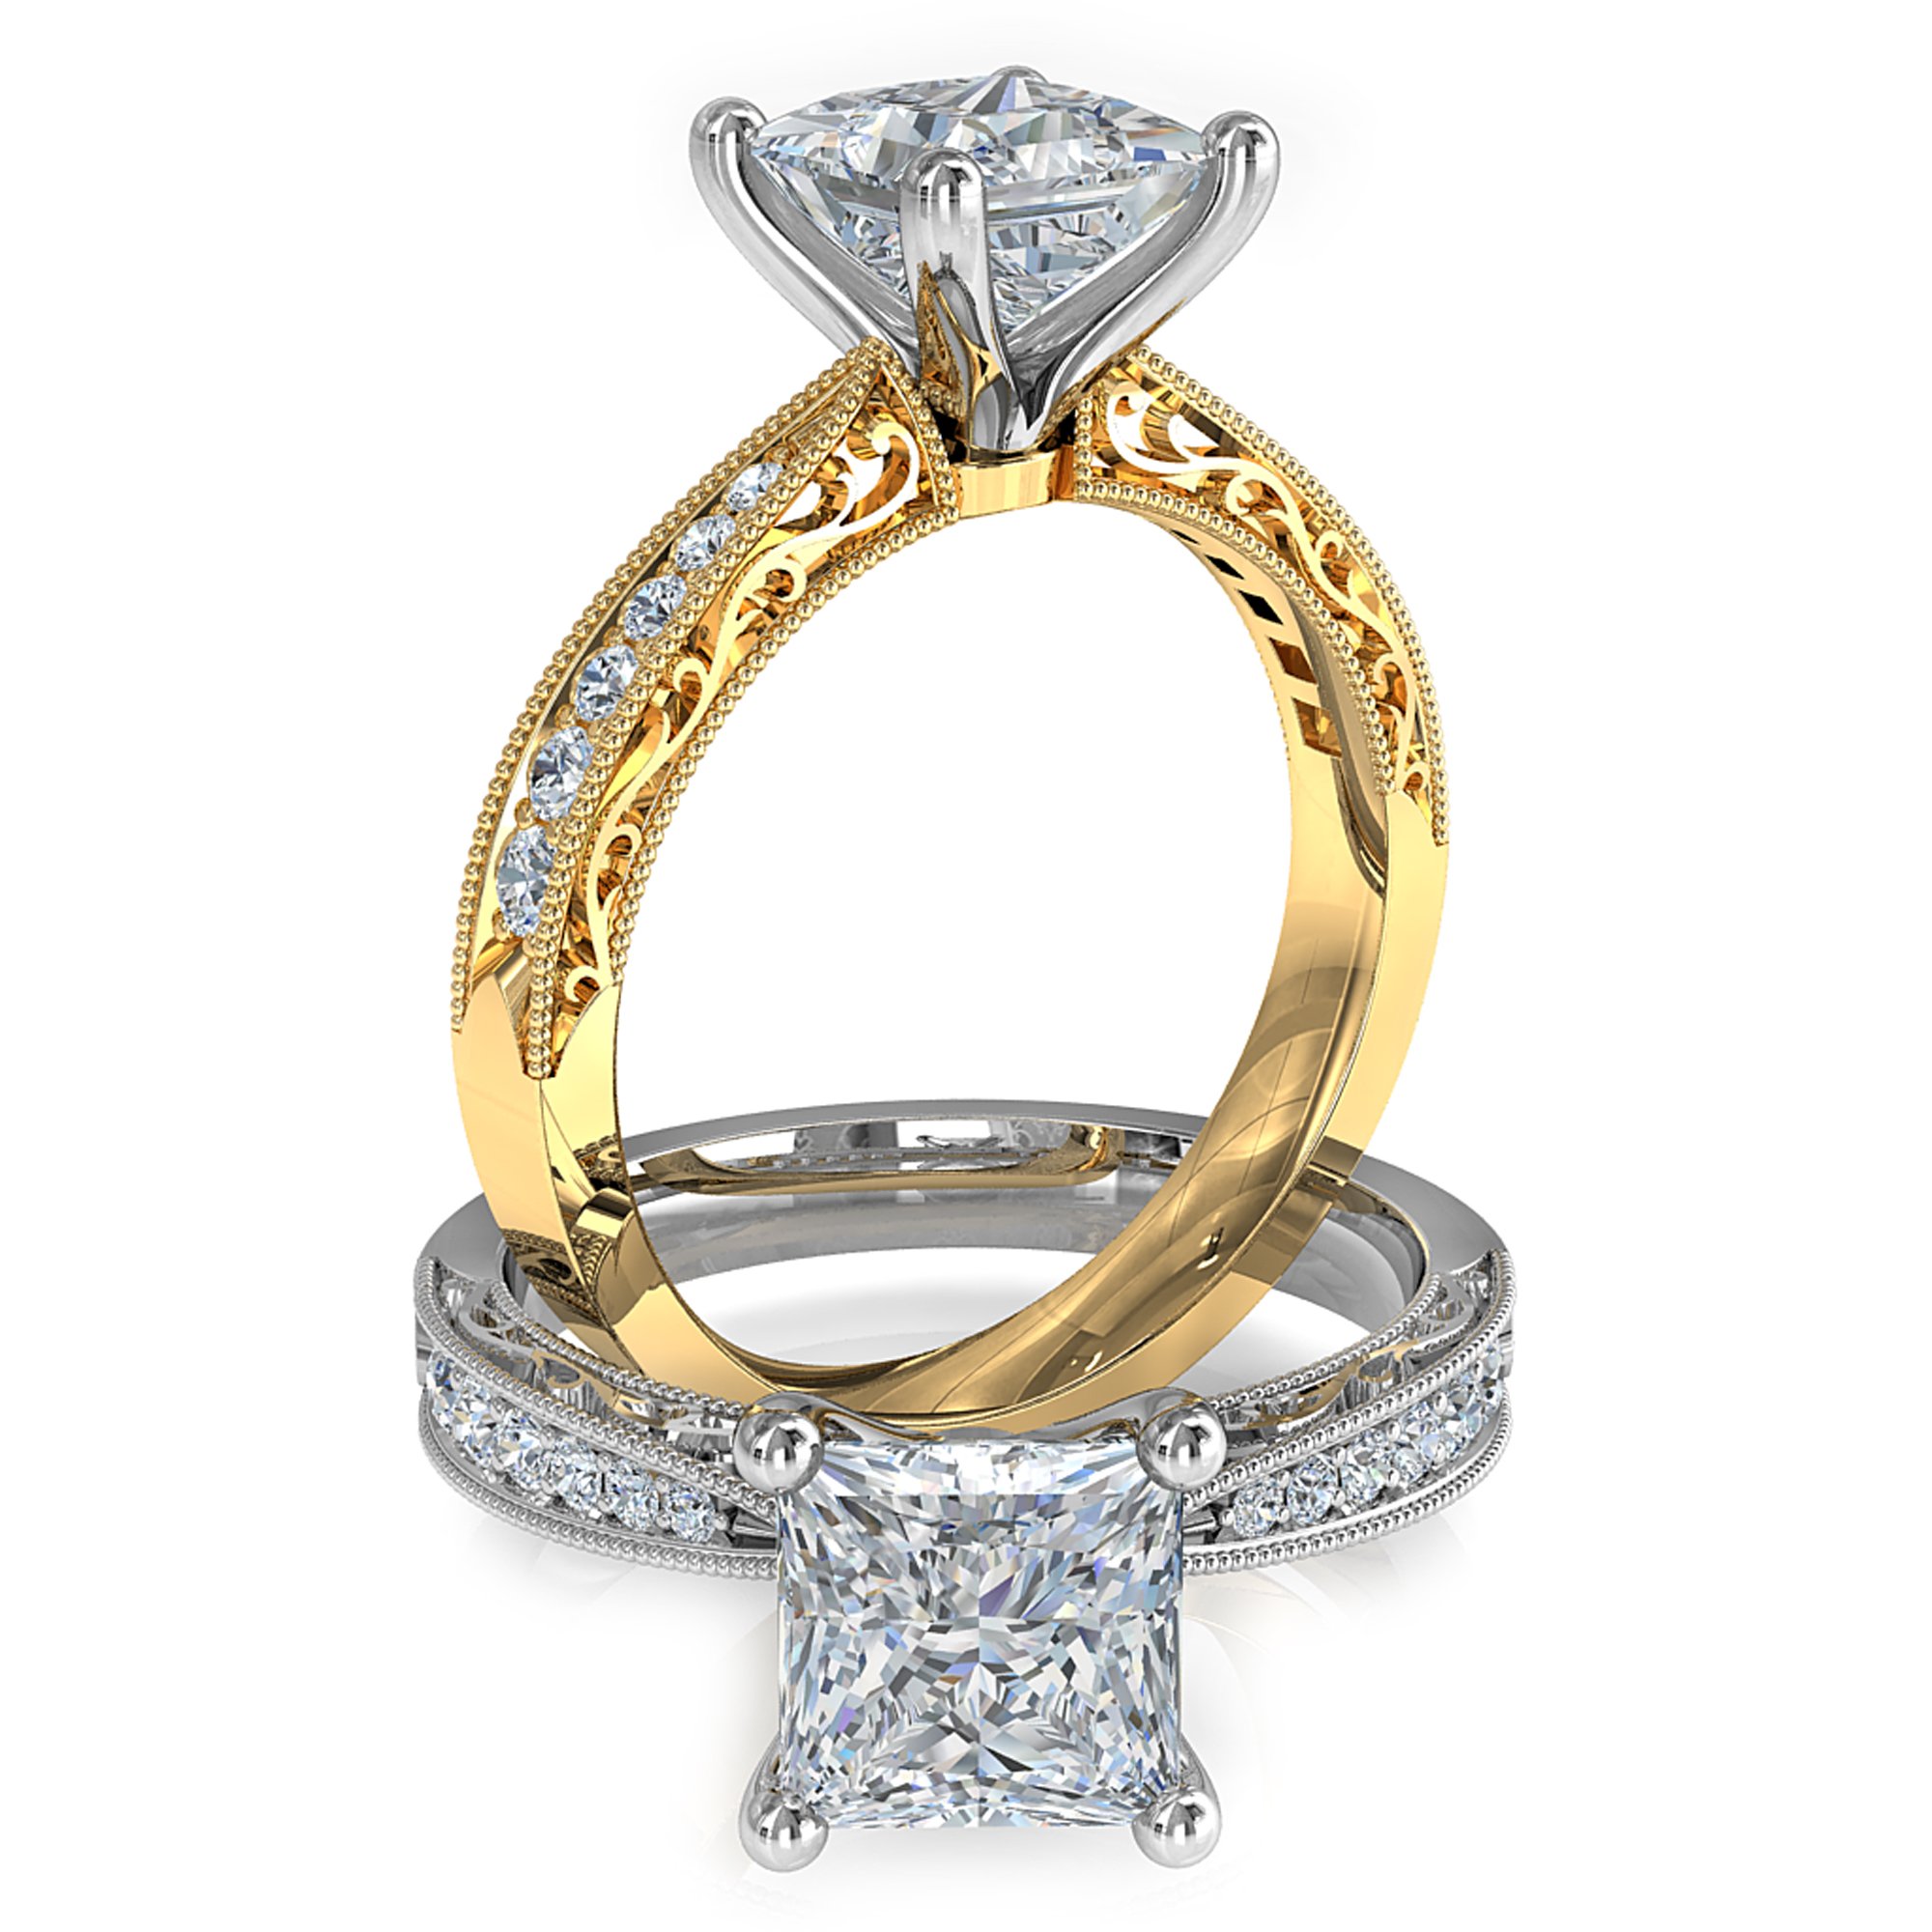 Princess Cut Solitaire Diamond Engagement Ring, 4 Claws on a Bead Set Band with Vintage Scroll Detail on Outer Edge of Band.